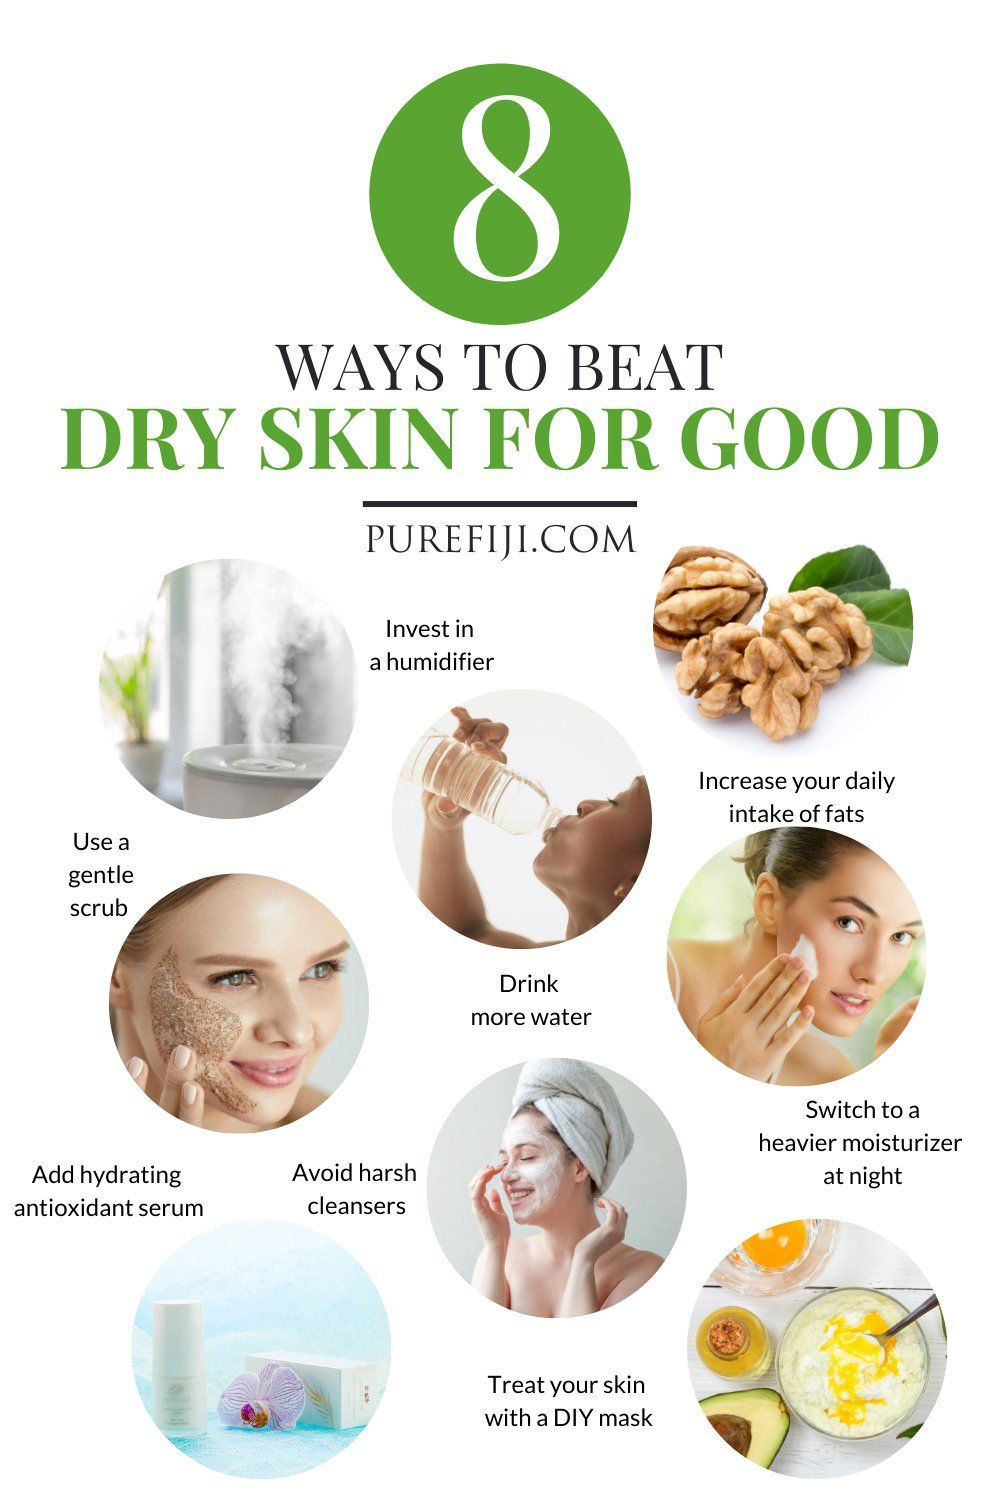 Natural Skin Care Routine And Tips For Dry Skin 8 Easy Steps Natural Skin Care Natural Skin Care Routine Dry Skin Care Routine